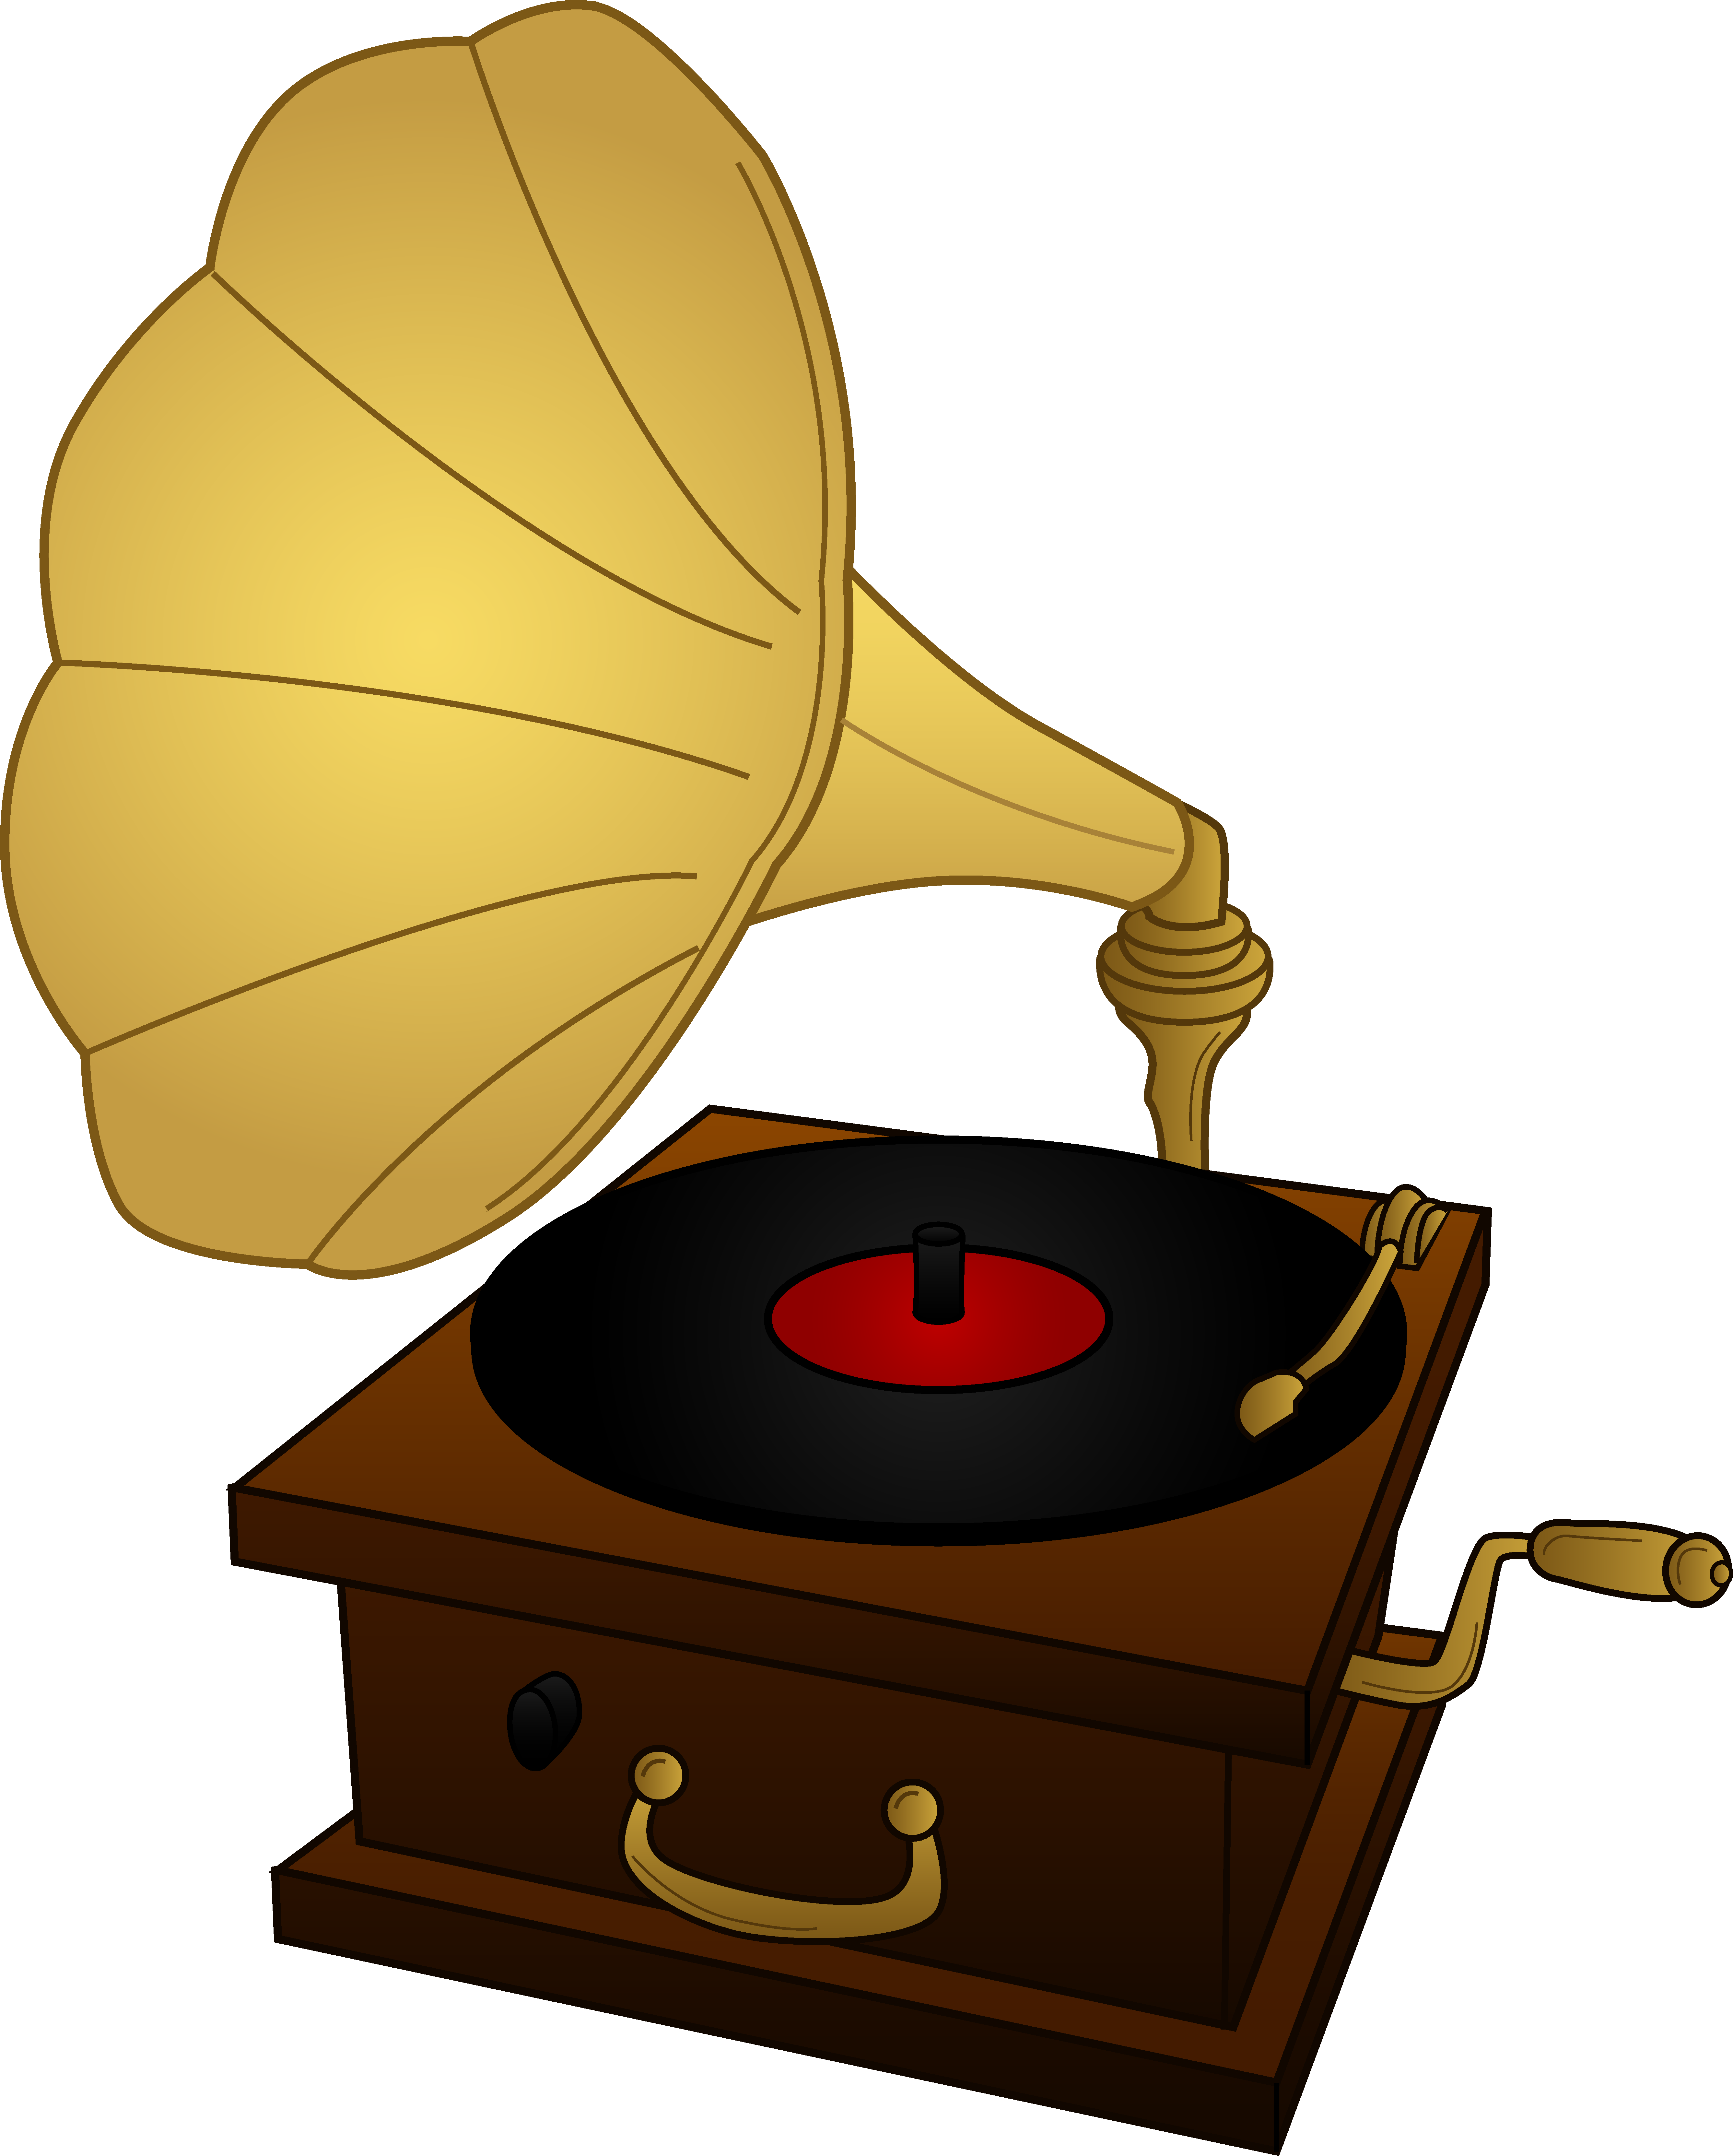 Steampunk clipart old fashioned. Record player drawing at